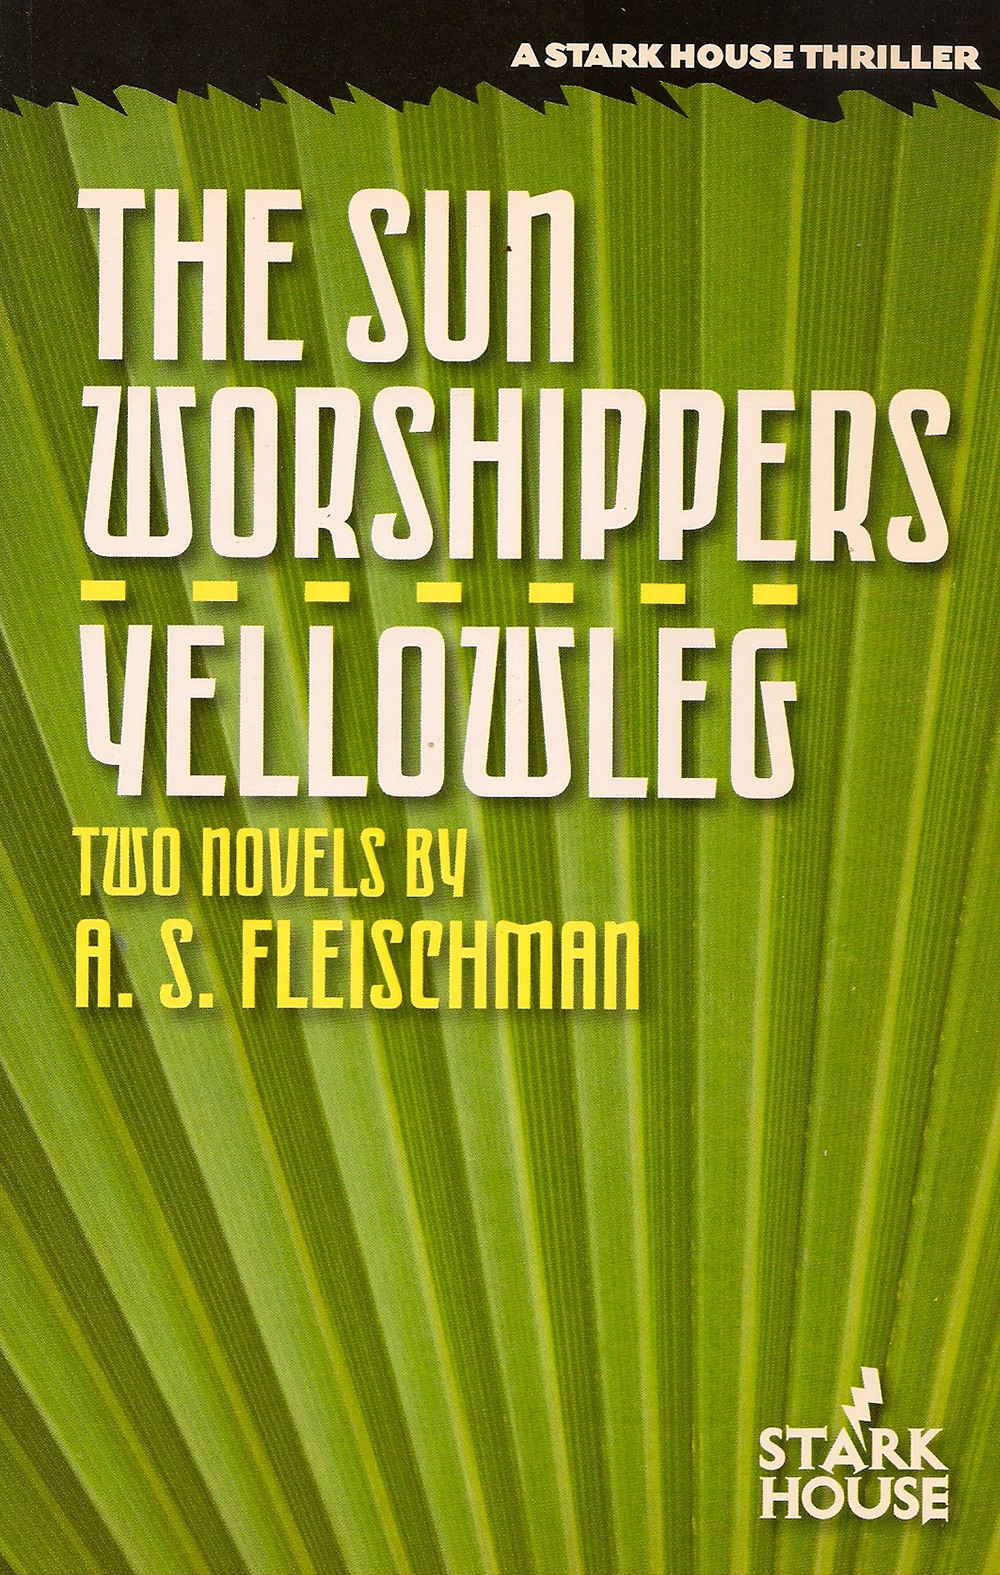 The Sun Worshippers/Yellowleg -